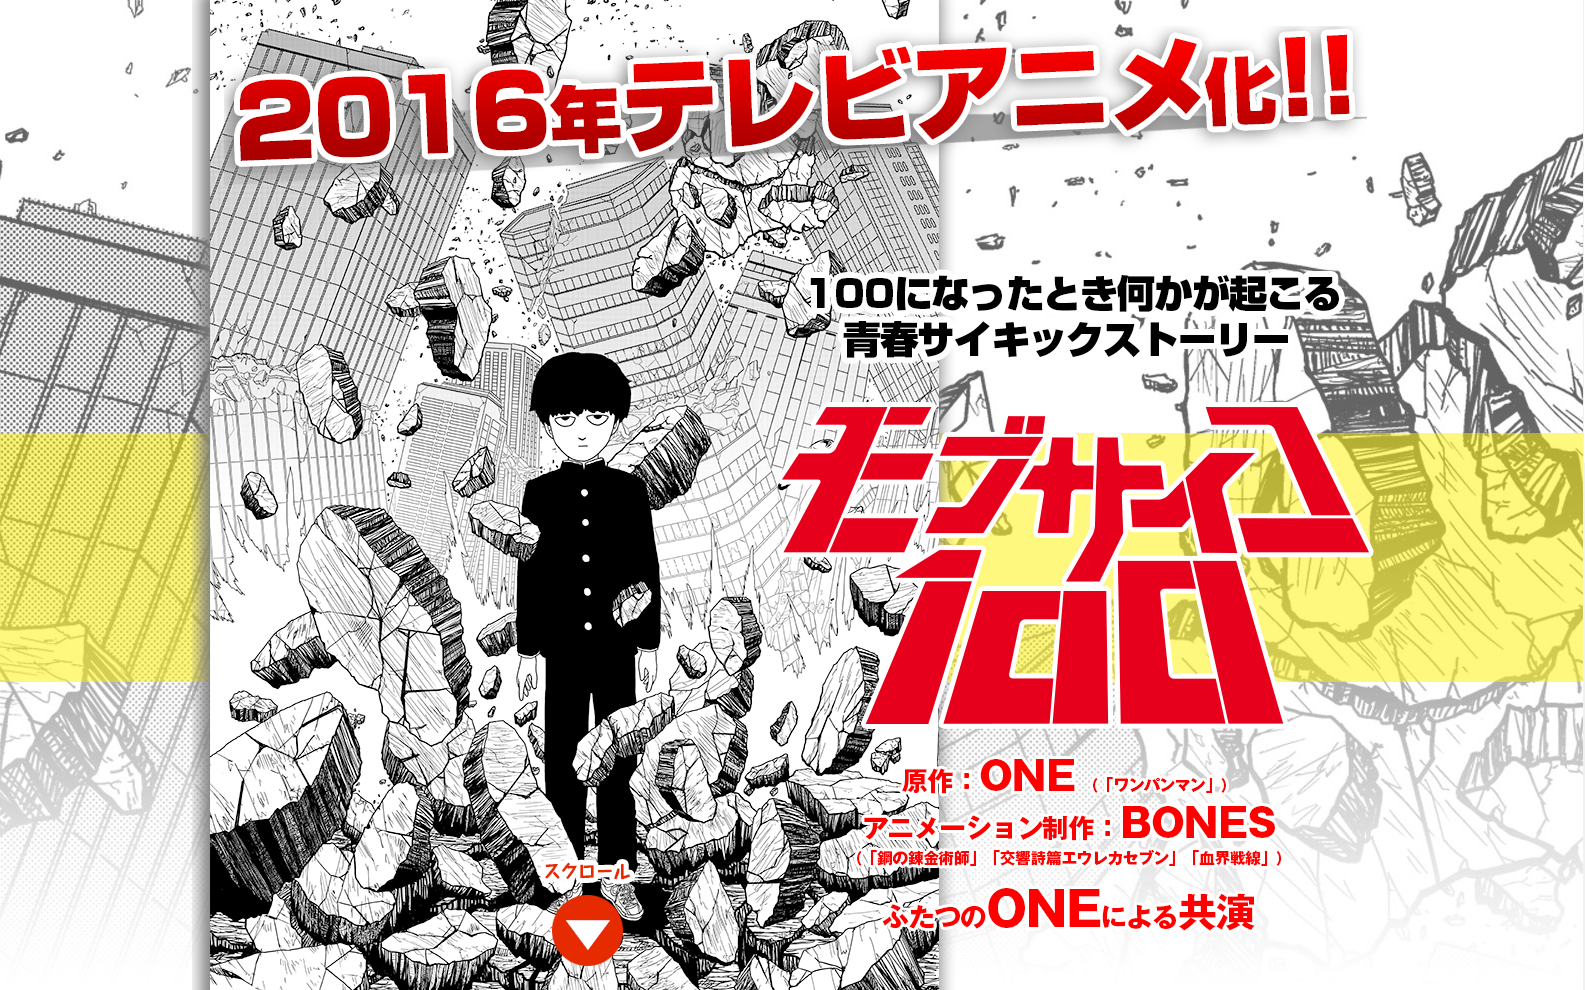 Preview Anime Mob Psycho 100 2016